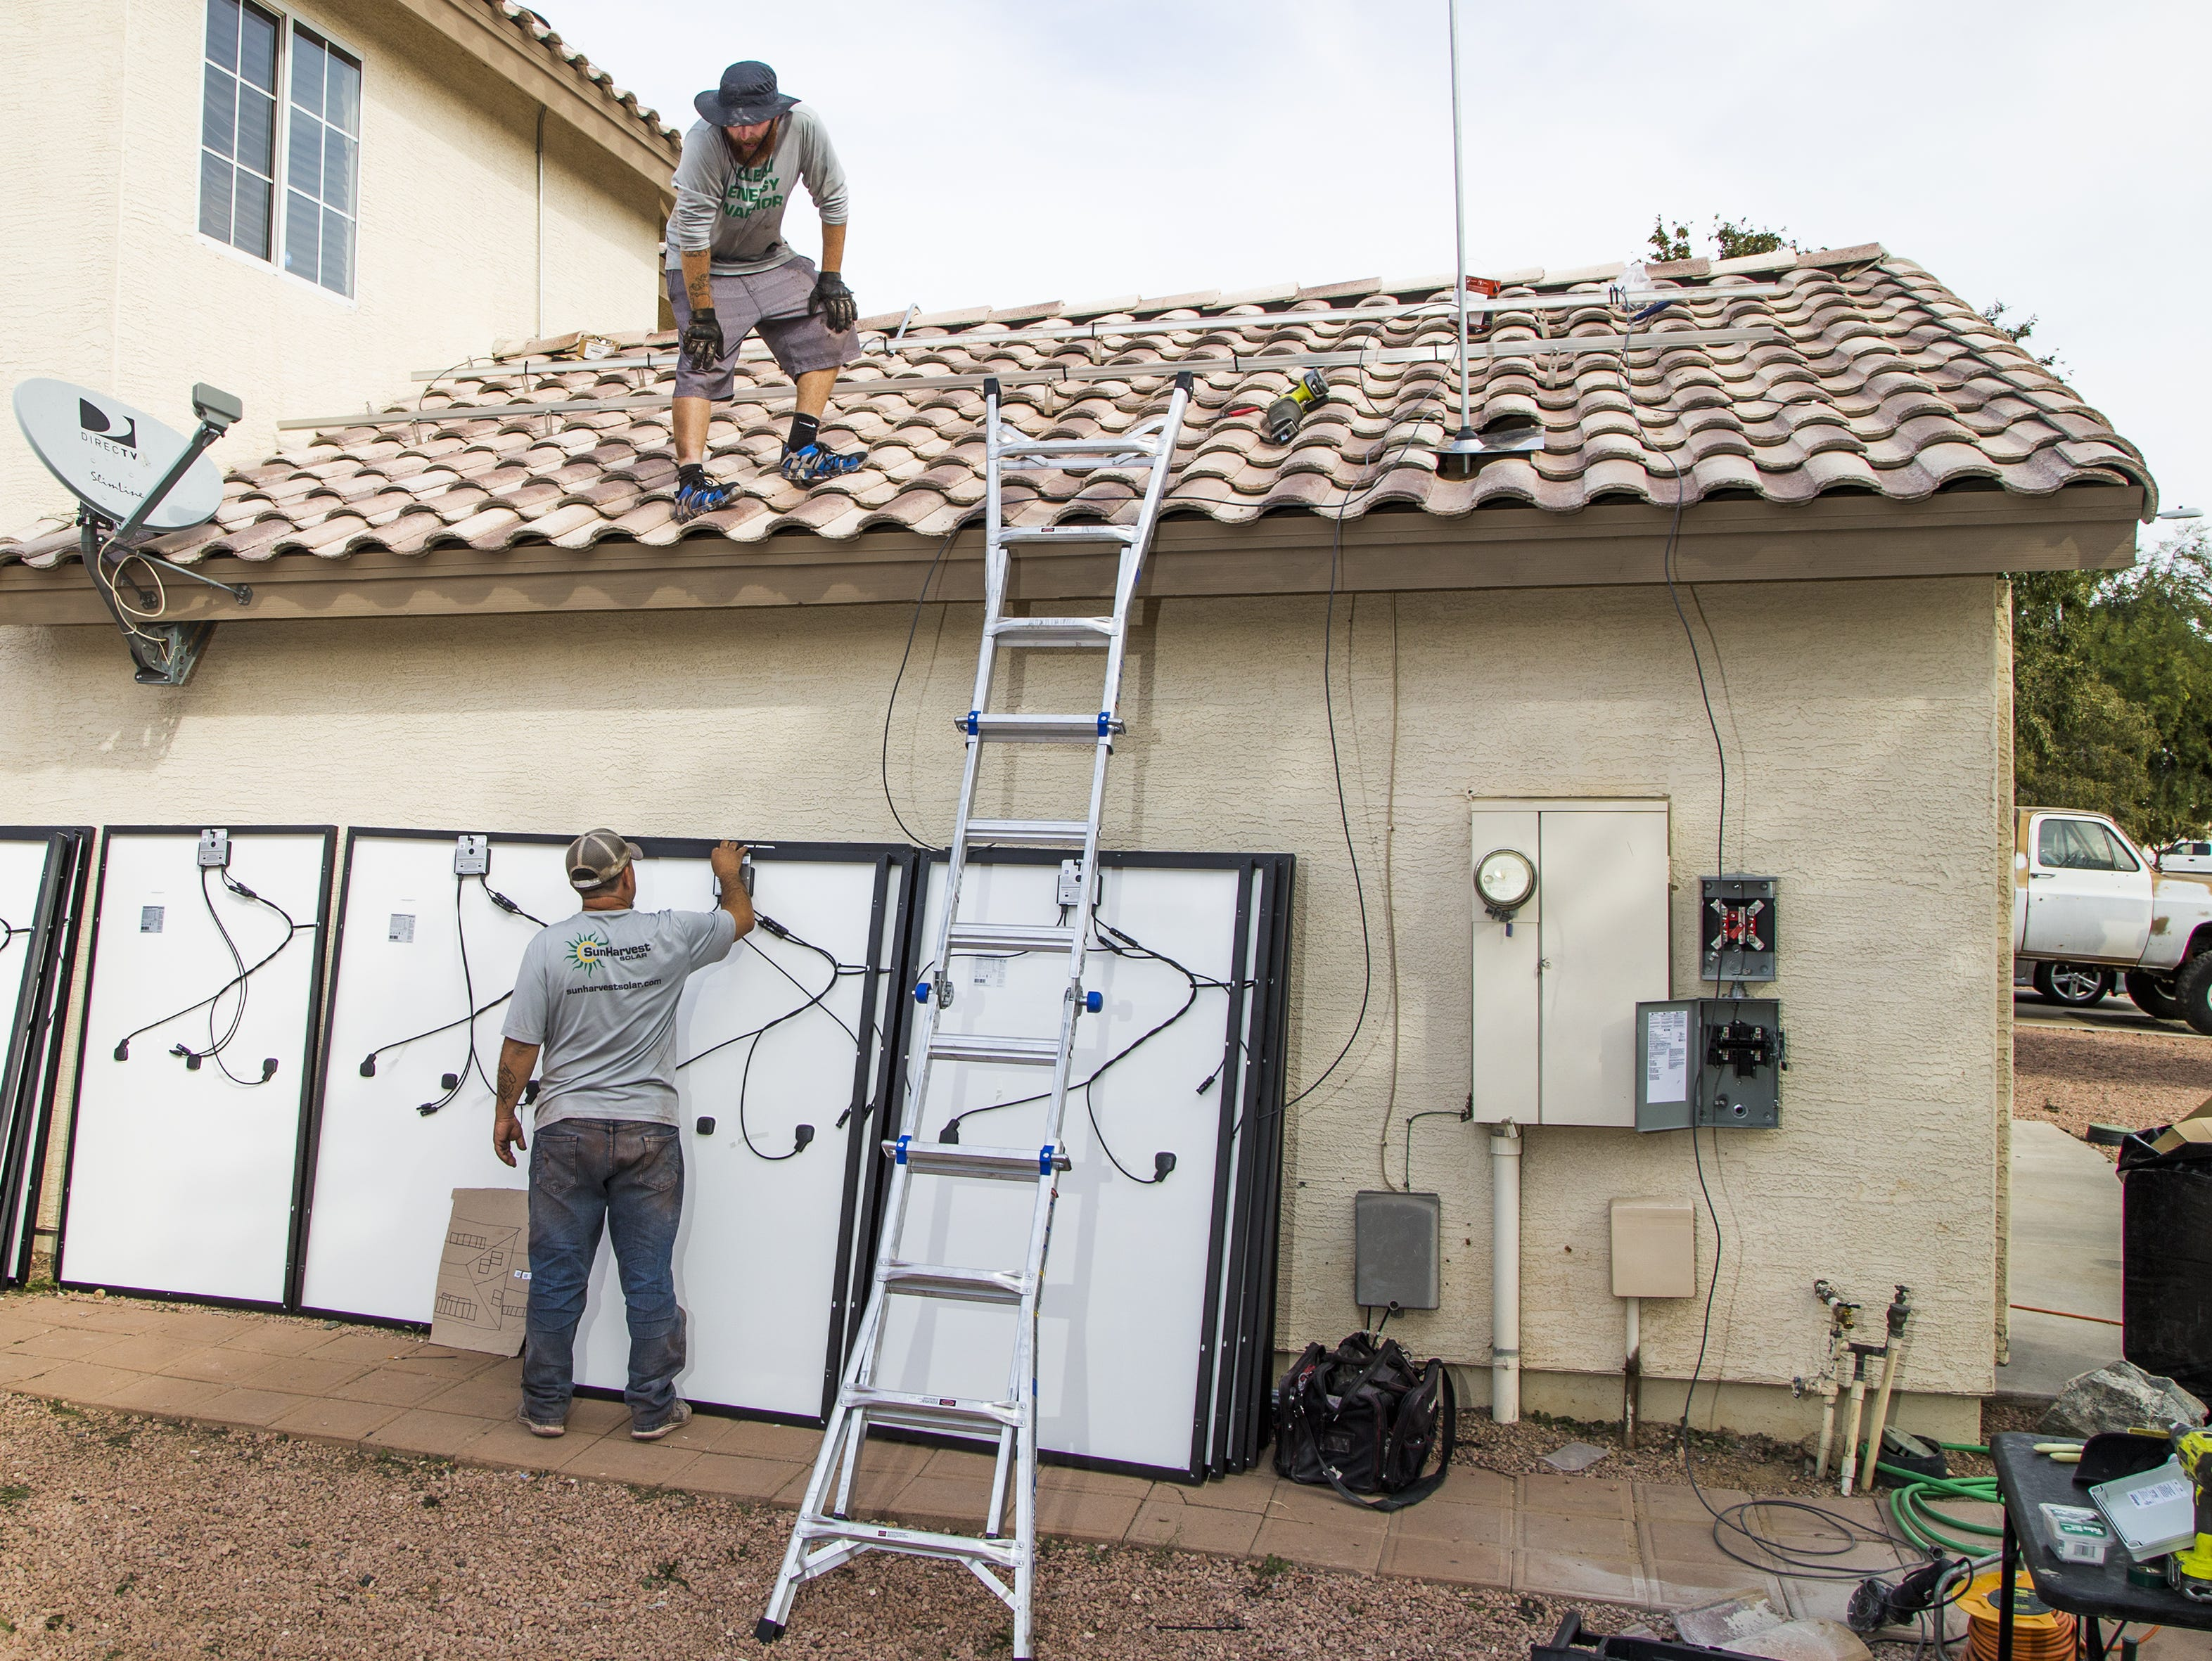 Larry Chambers (left) and Chris Miller, solar panel installers for SunHarvest Solar, install panels on a home in El Mirage on Nov. 20, 2018.